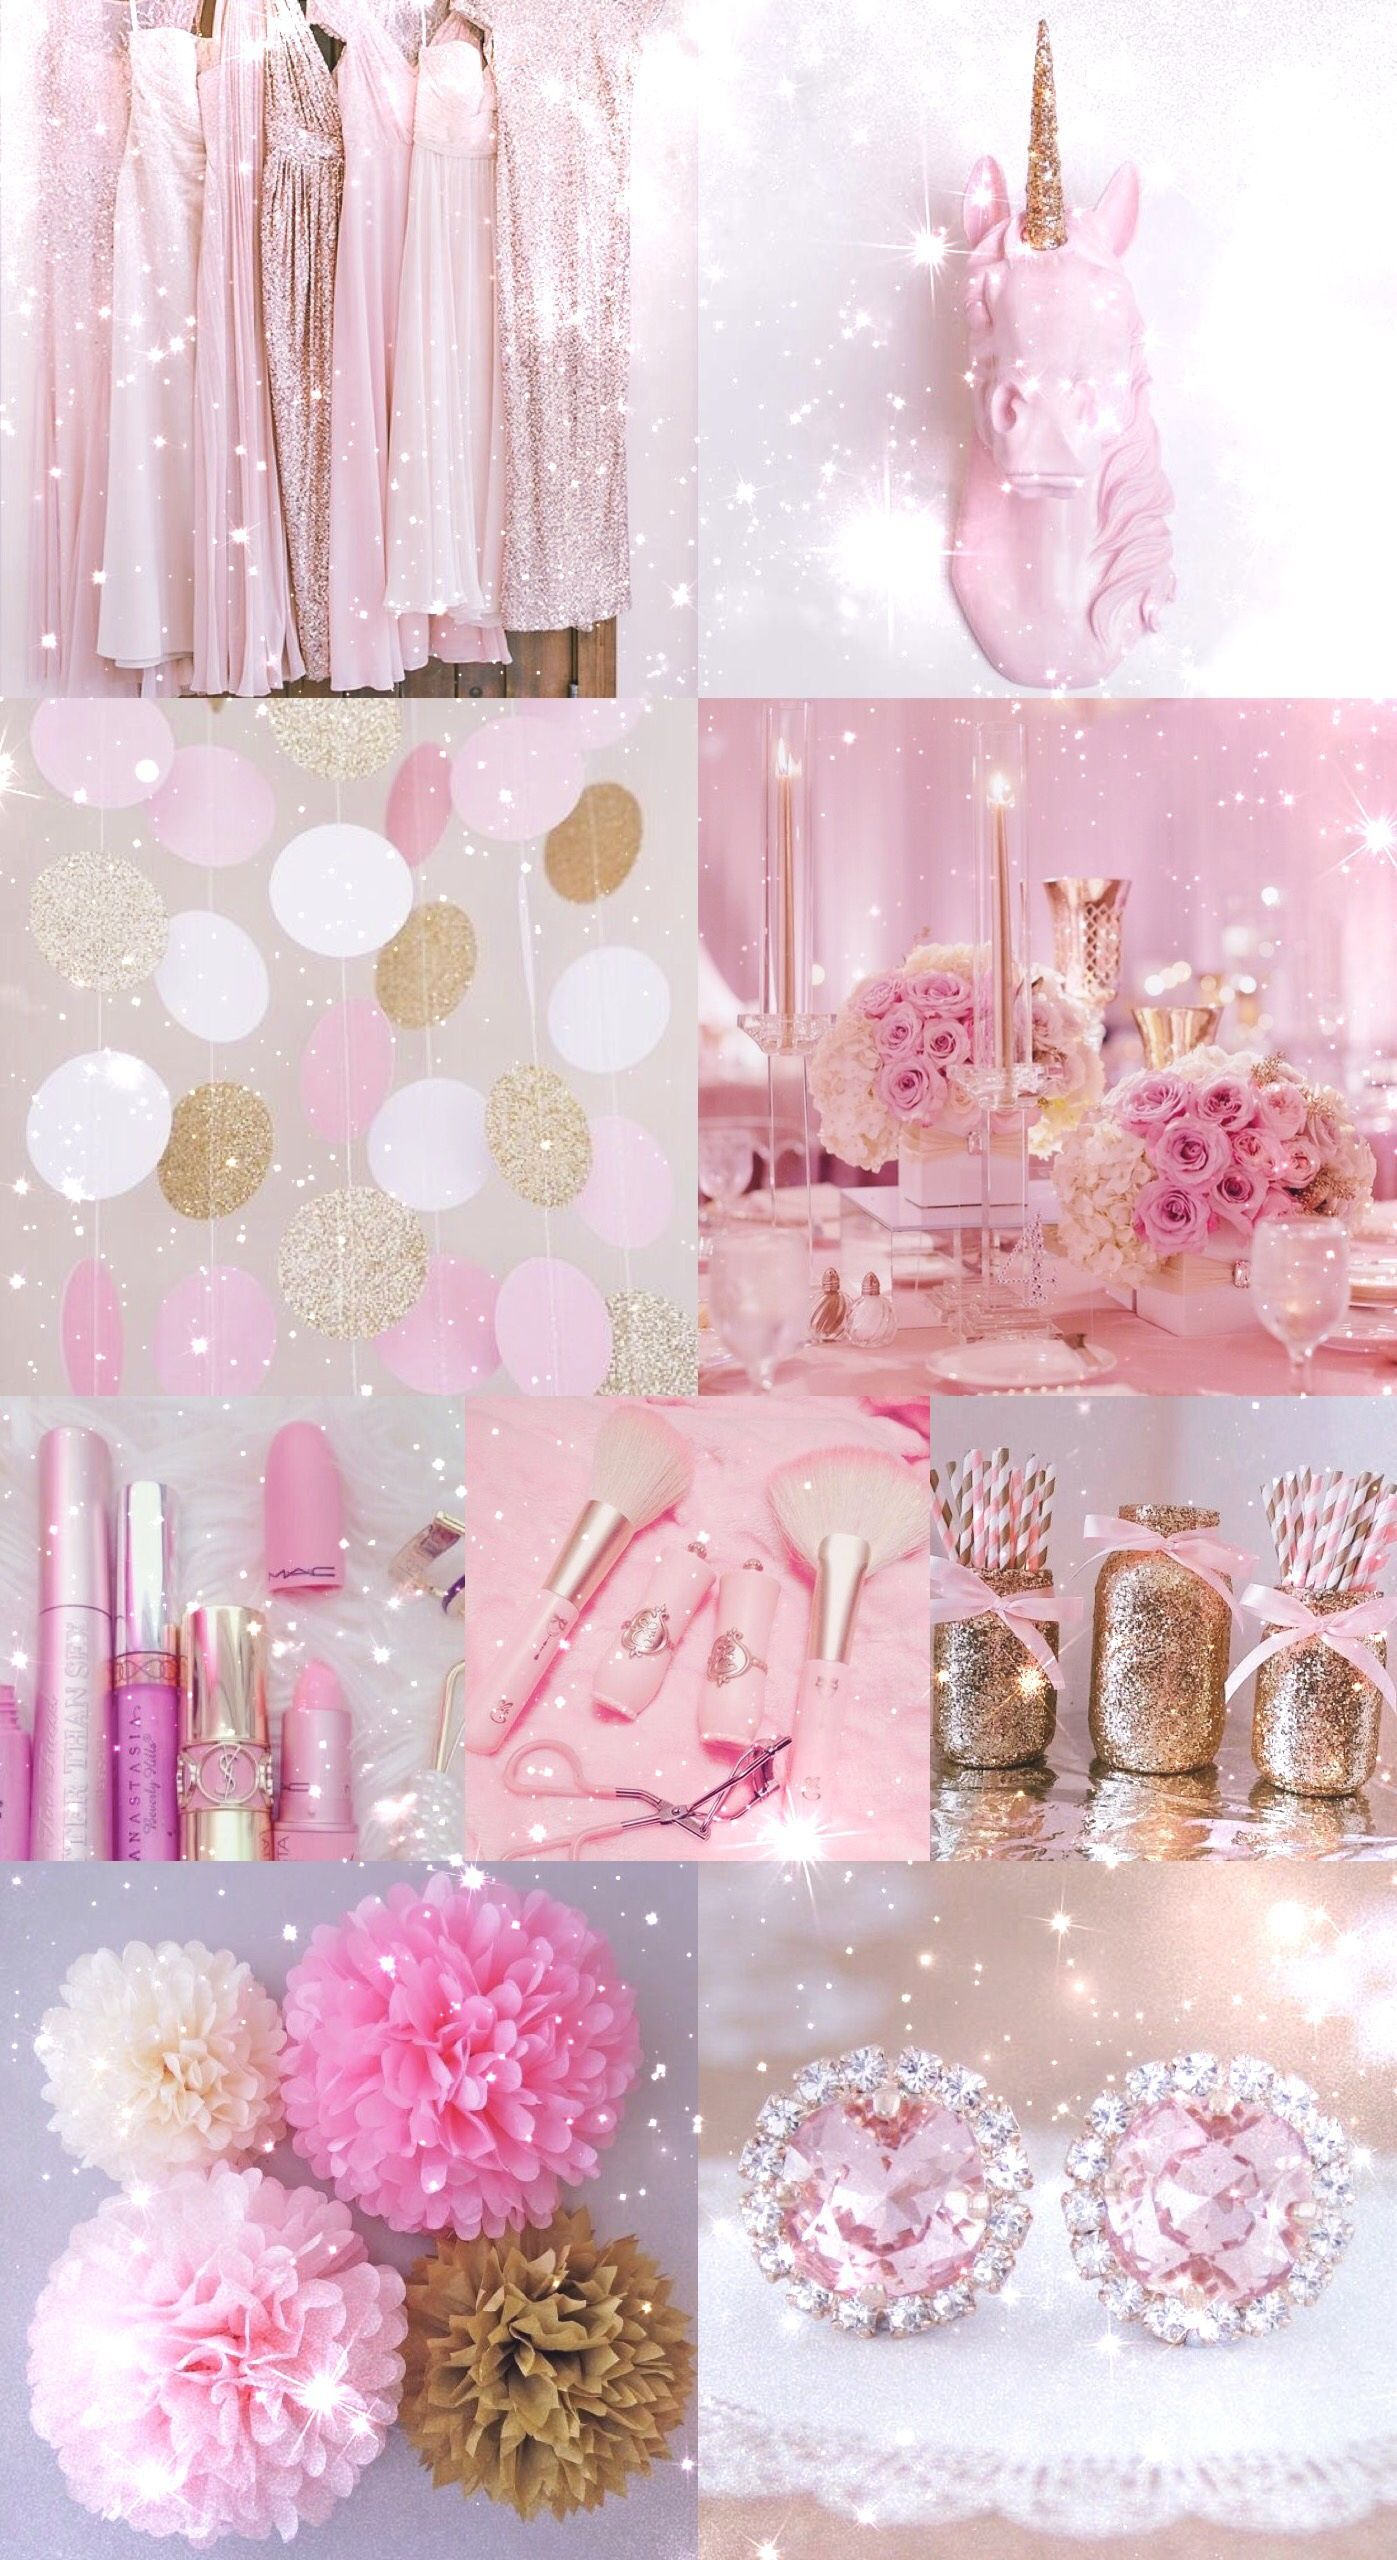 Pink, Gold, Wallpaper, Background, Hd, Iphone, Glitter, - Glitter Cute Wallpapers For Iphone - HD Wallpaper